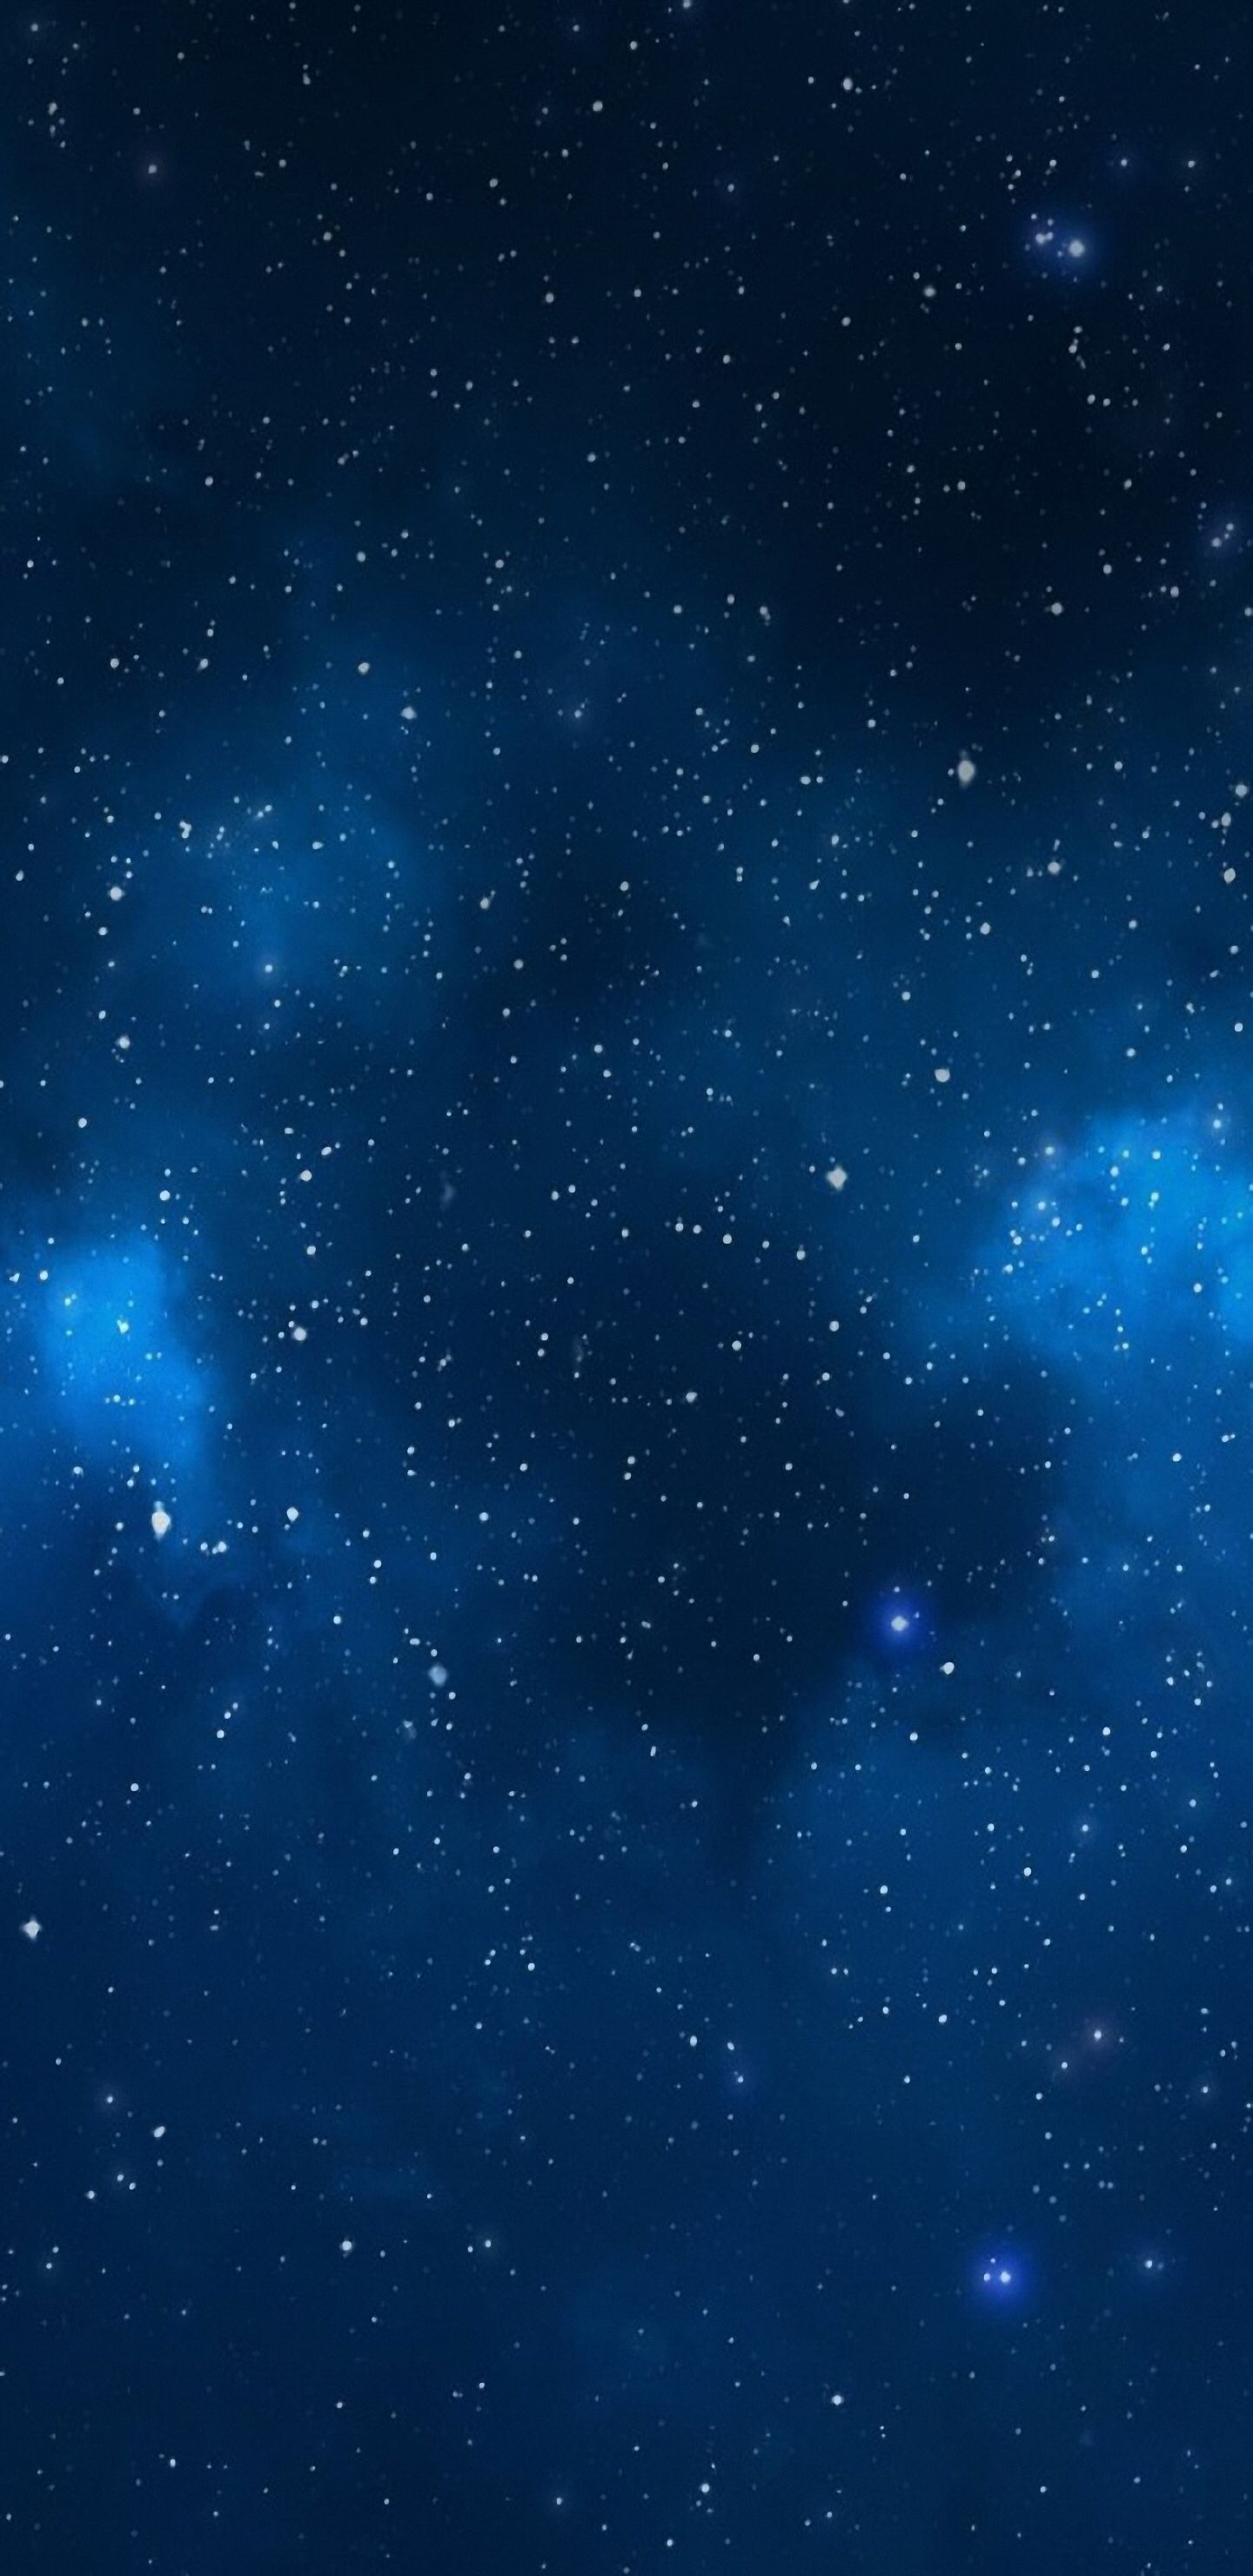 Dark blue wallpaper galaxy tranquil beauty nature night sky